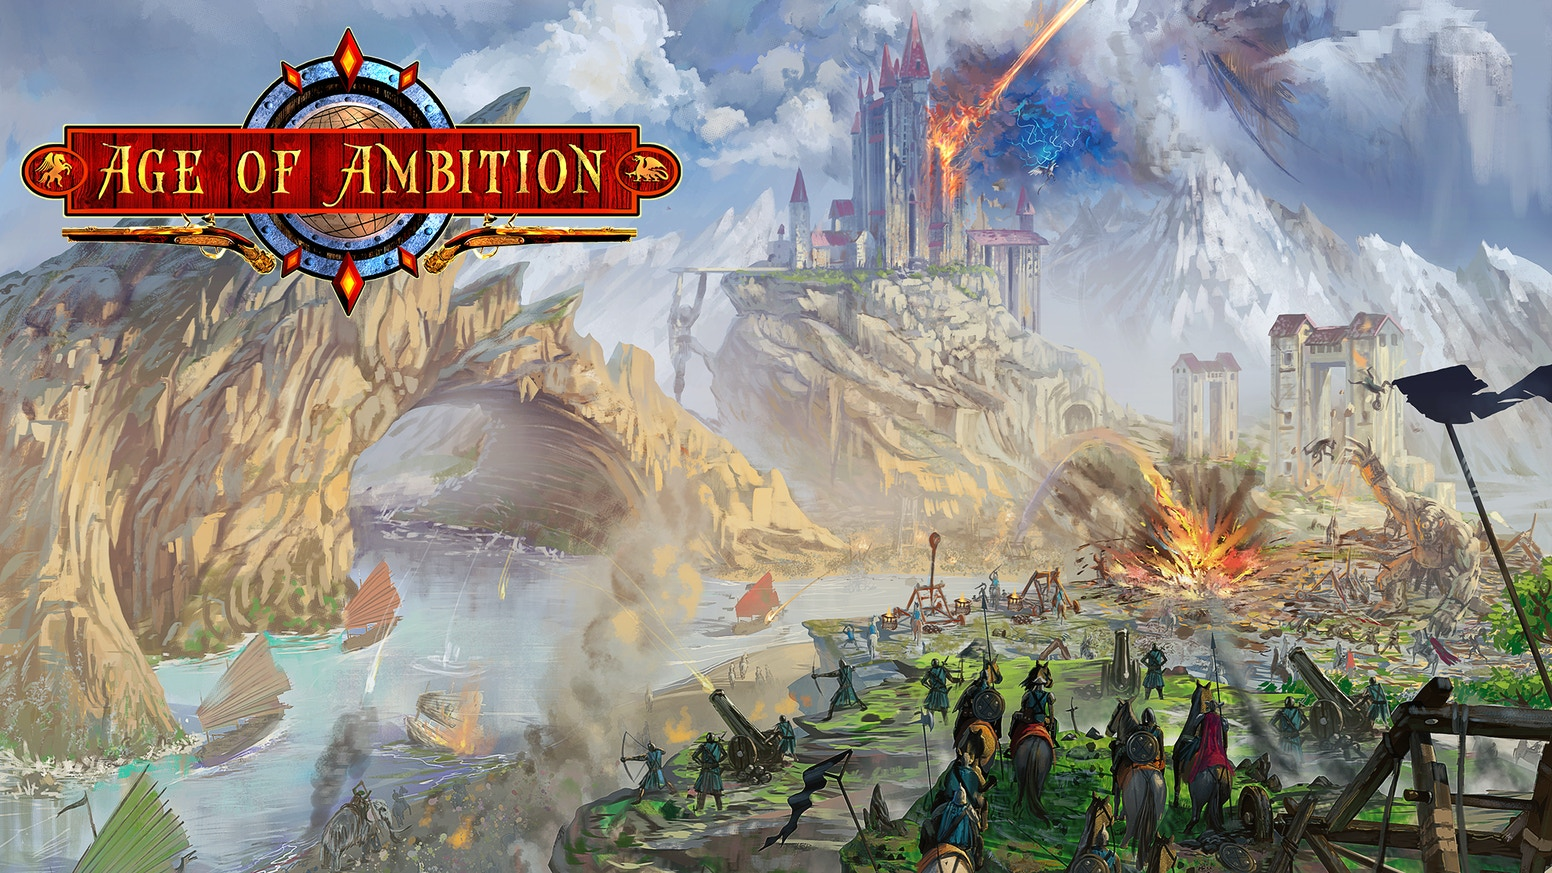 Age of Ambition is a tabletop roleplaying game (RPG) set in an age rapidly leaving the traditional fantasy milieu behind.